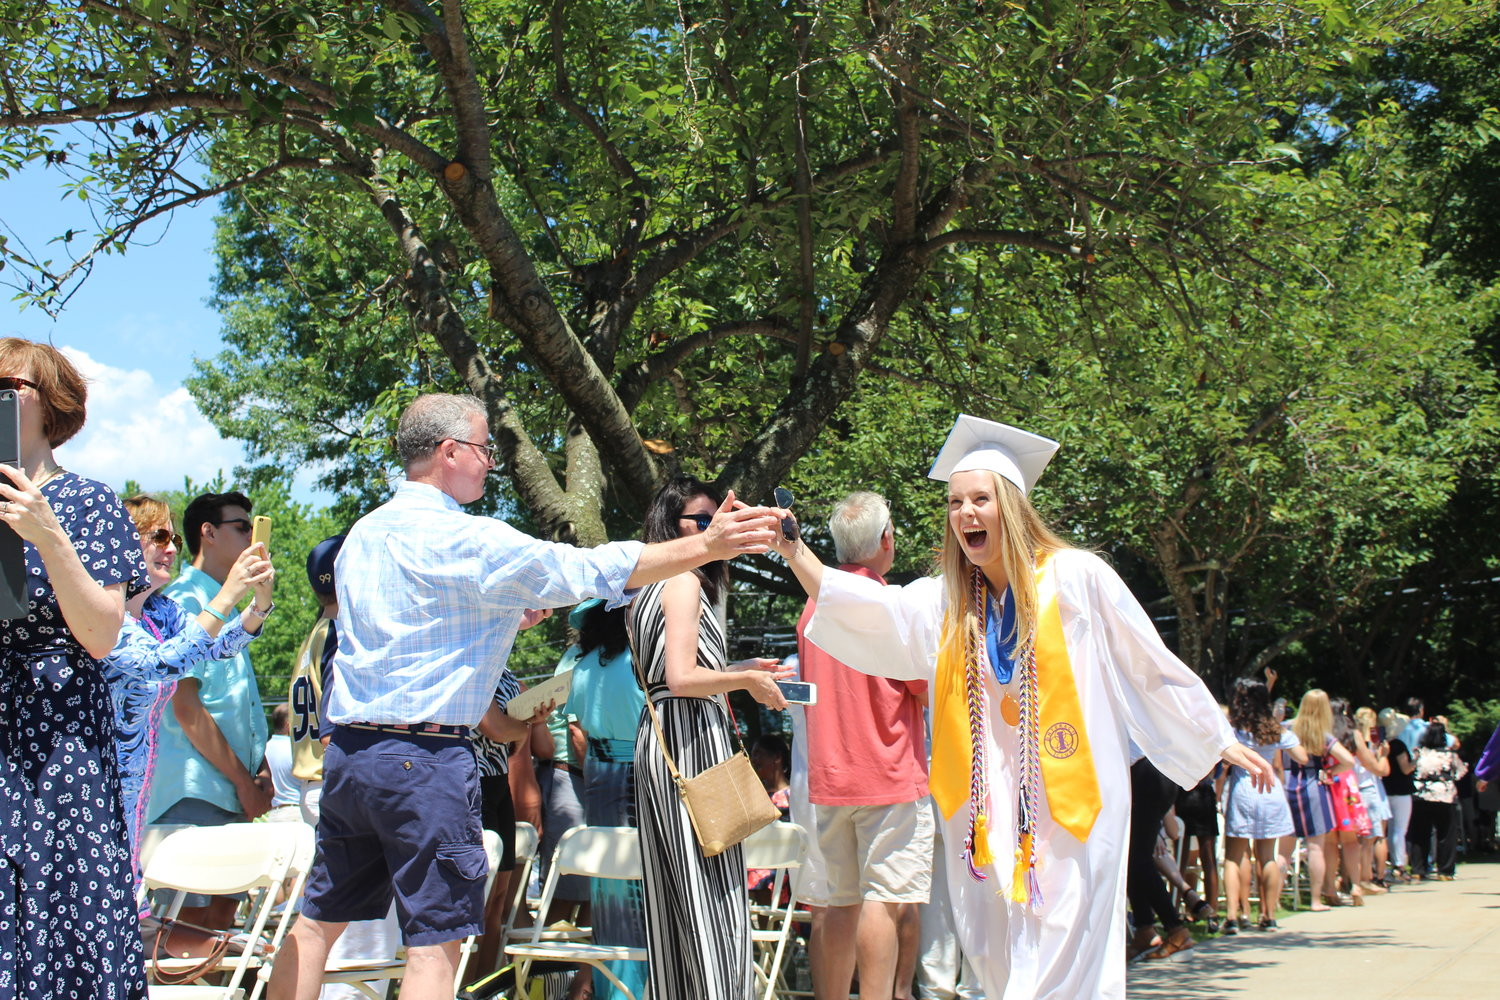 Lauren Jones received a high five as she made her way to the front of Oyster Bay High School.